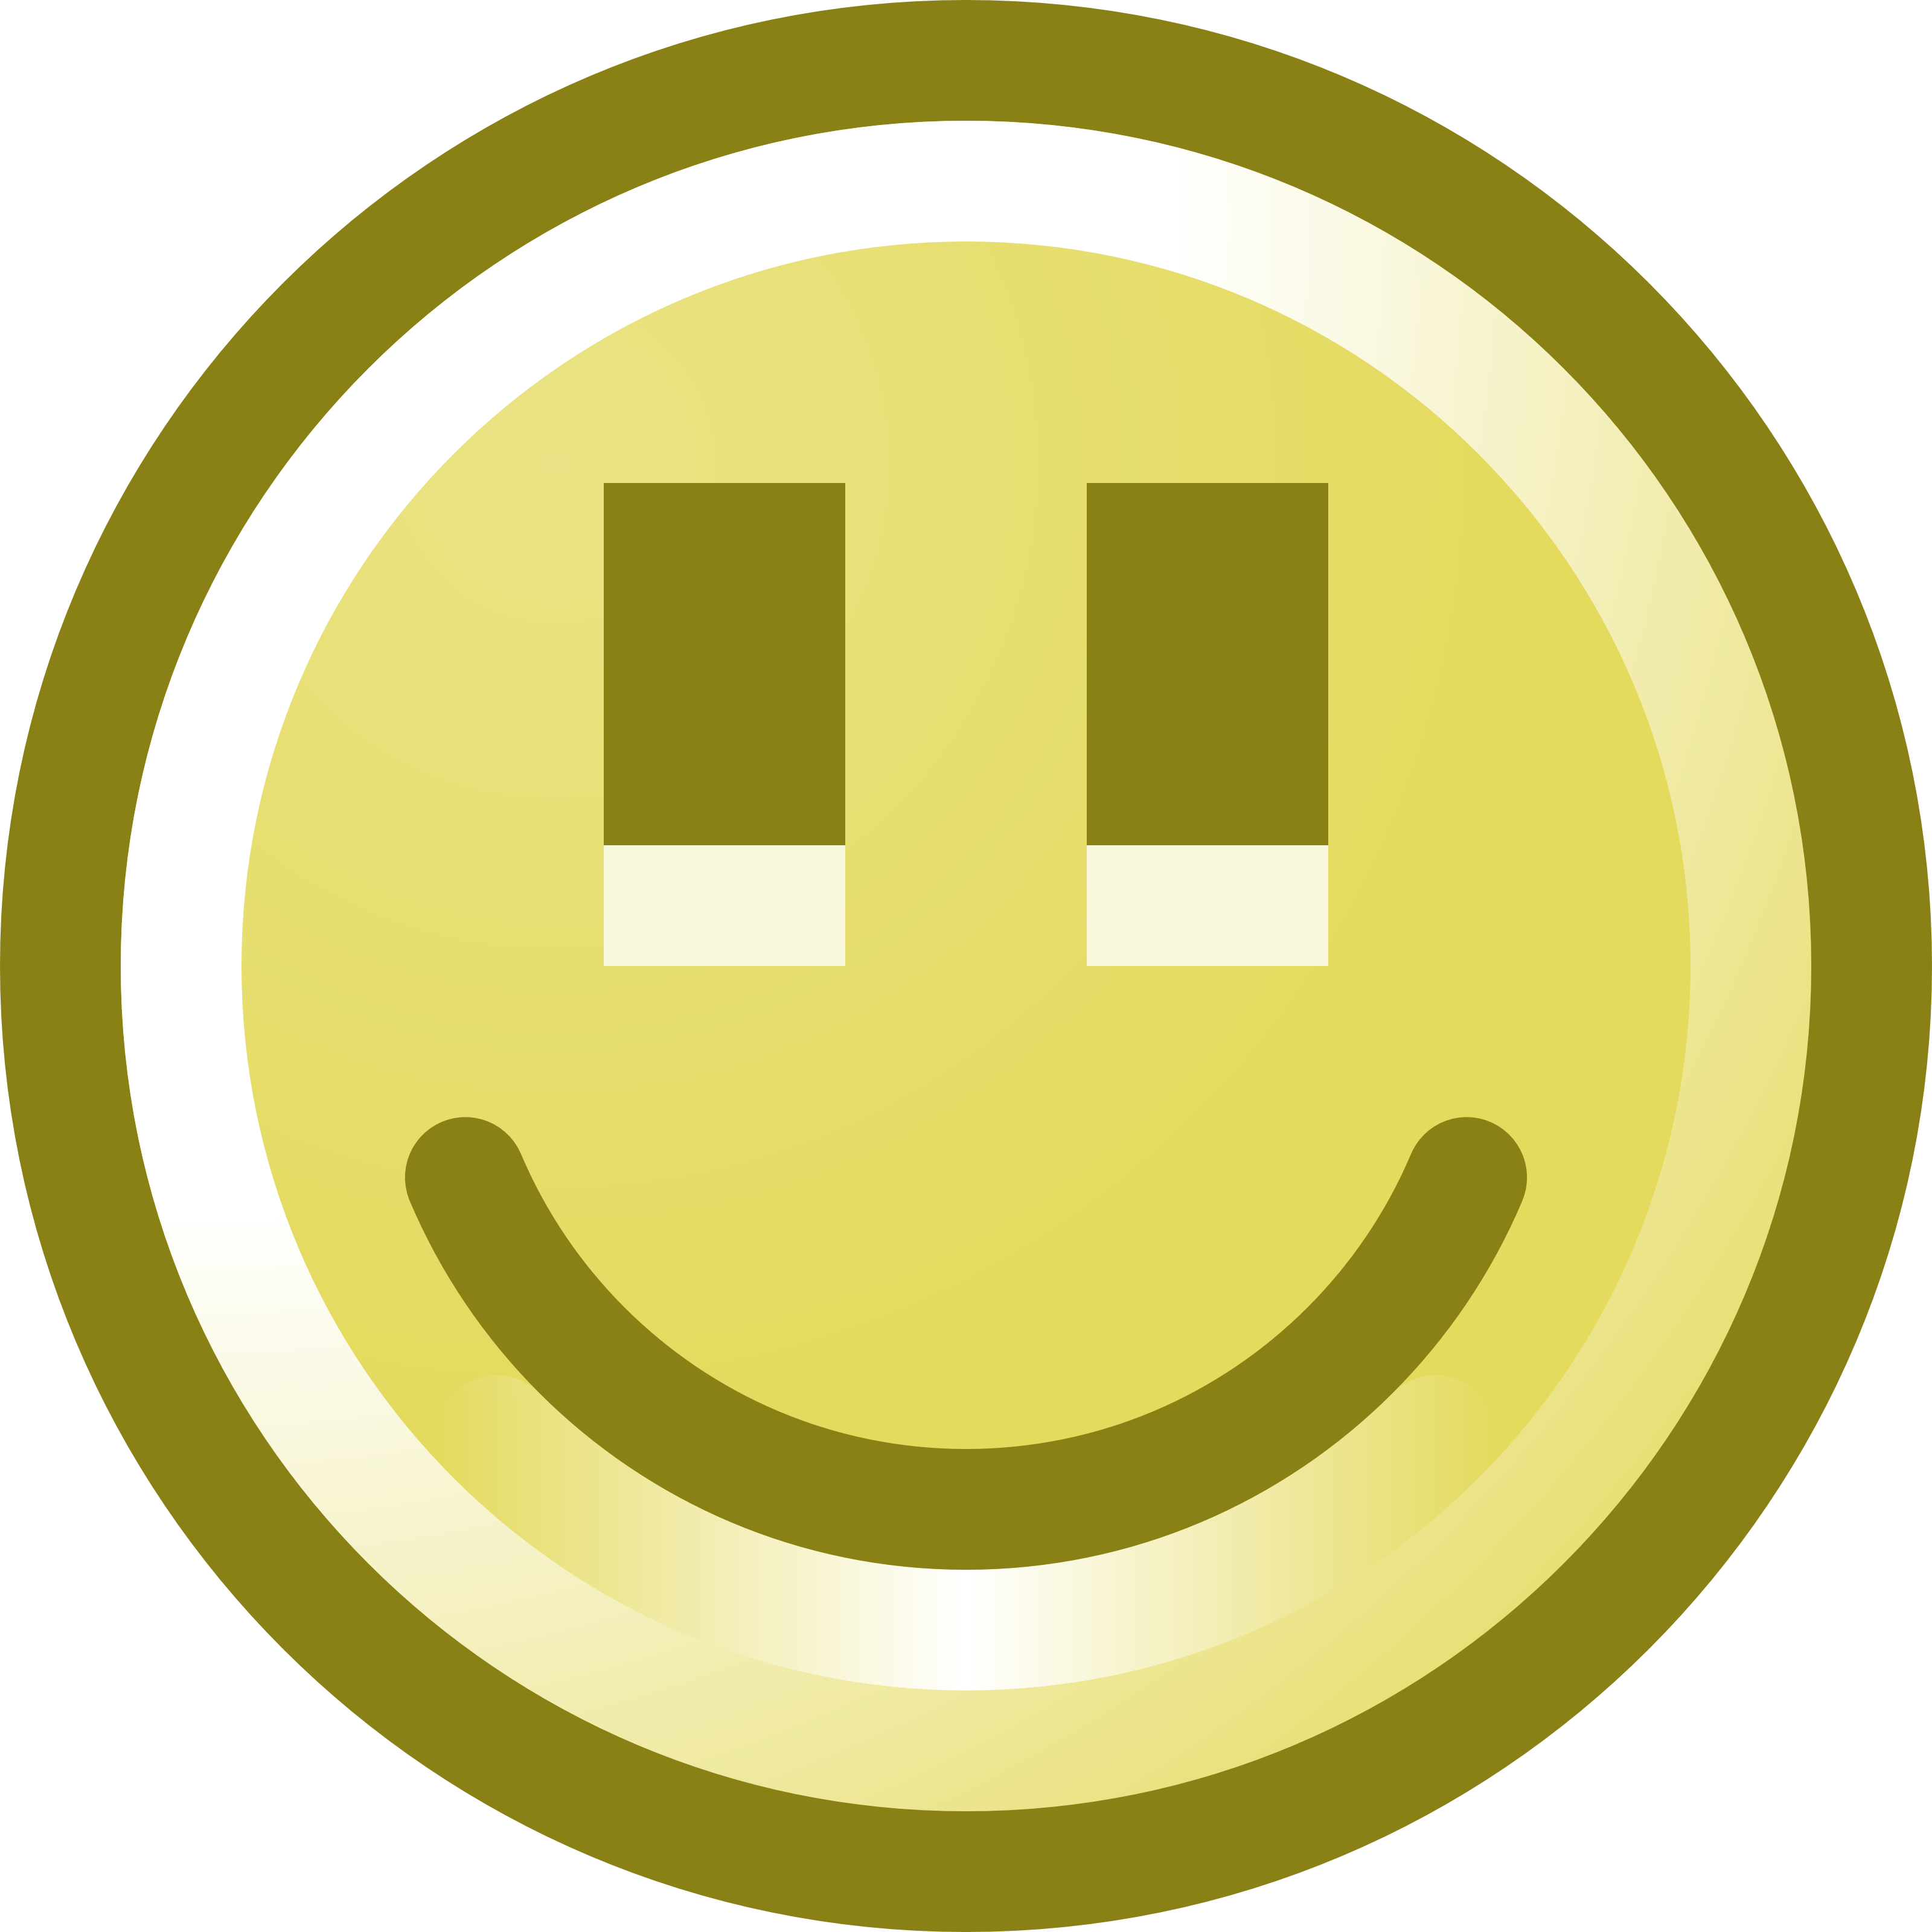 Free Smiling Smiley Face Clip Art Illustration - Happy Smiley Face Cartoon